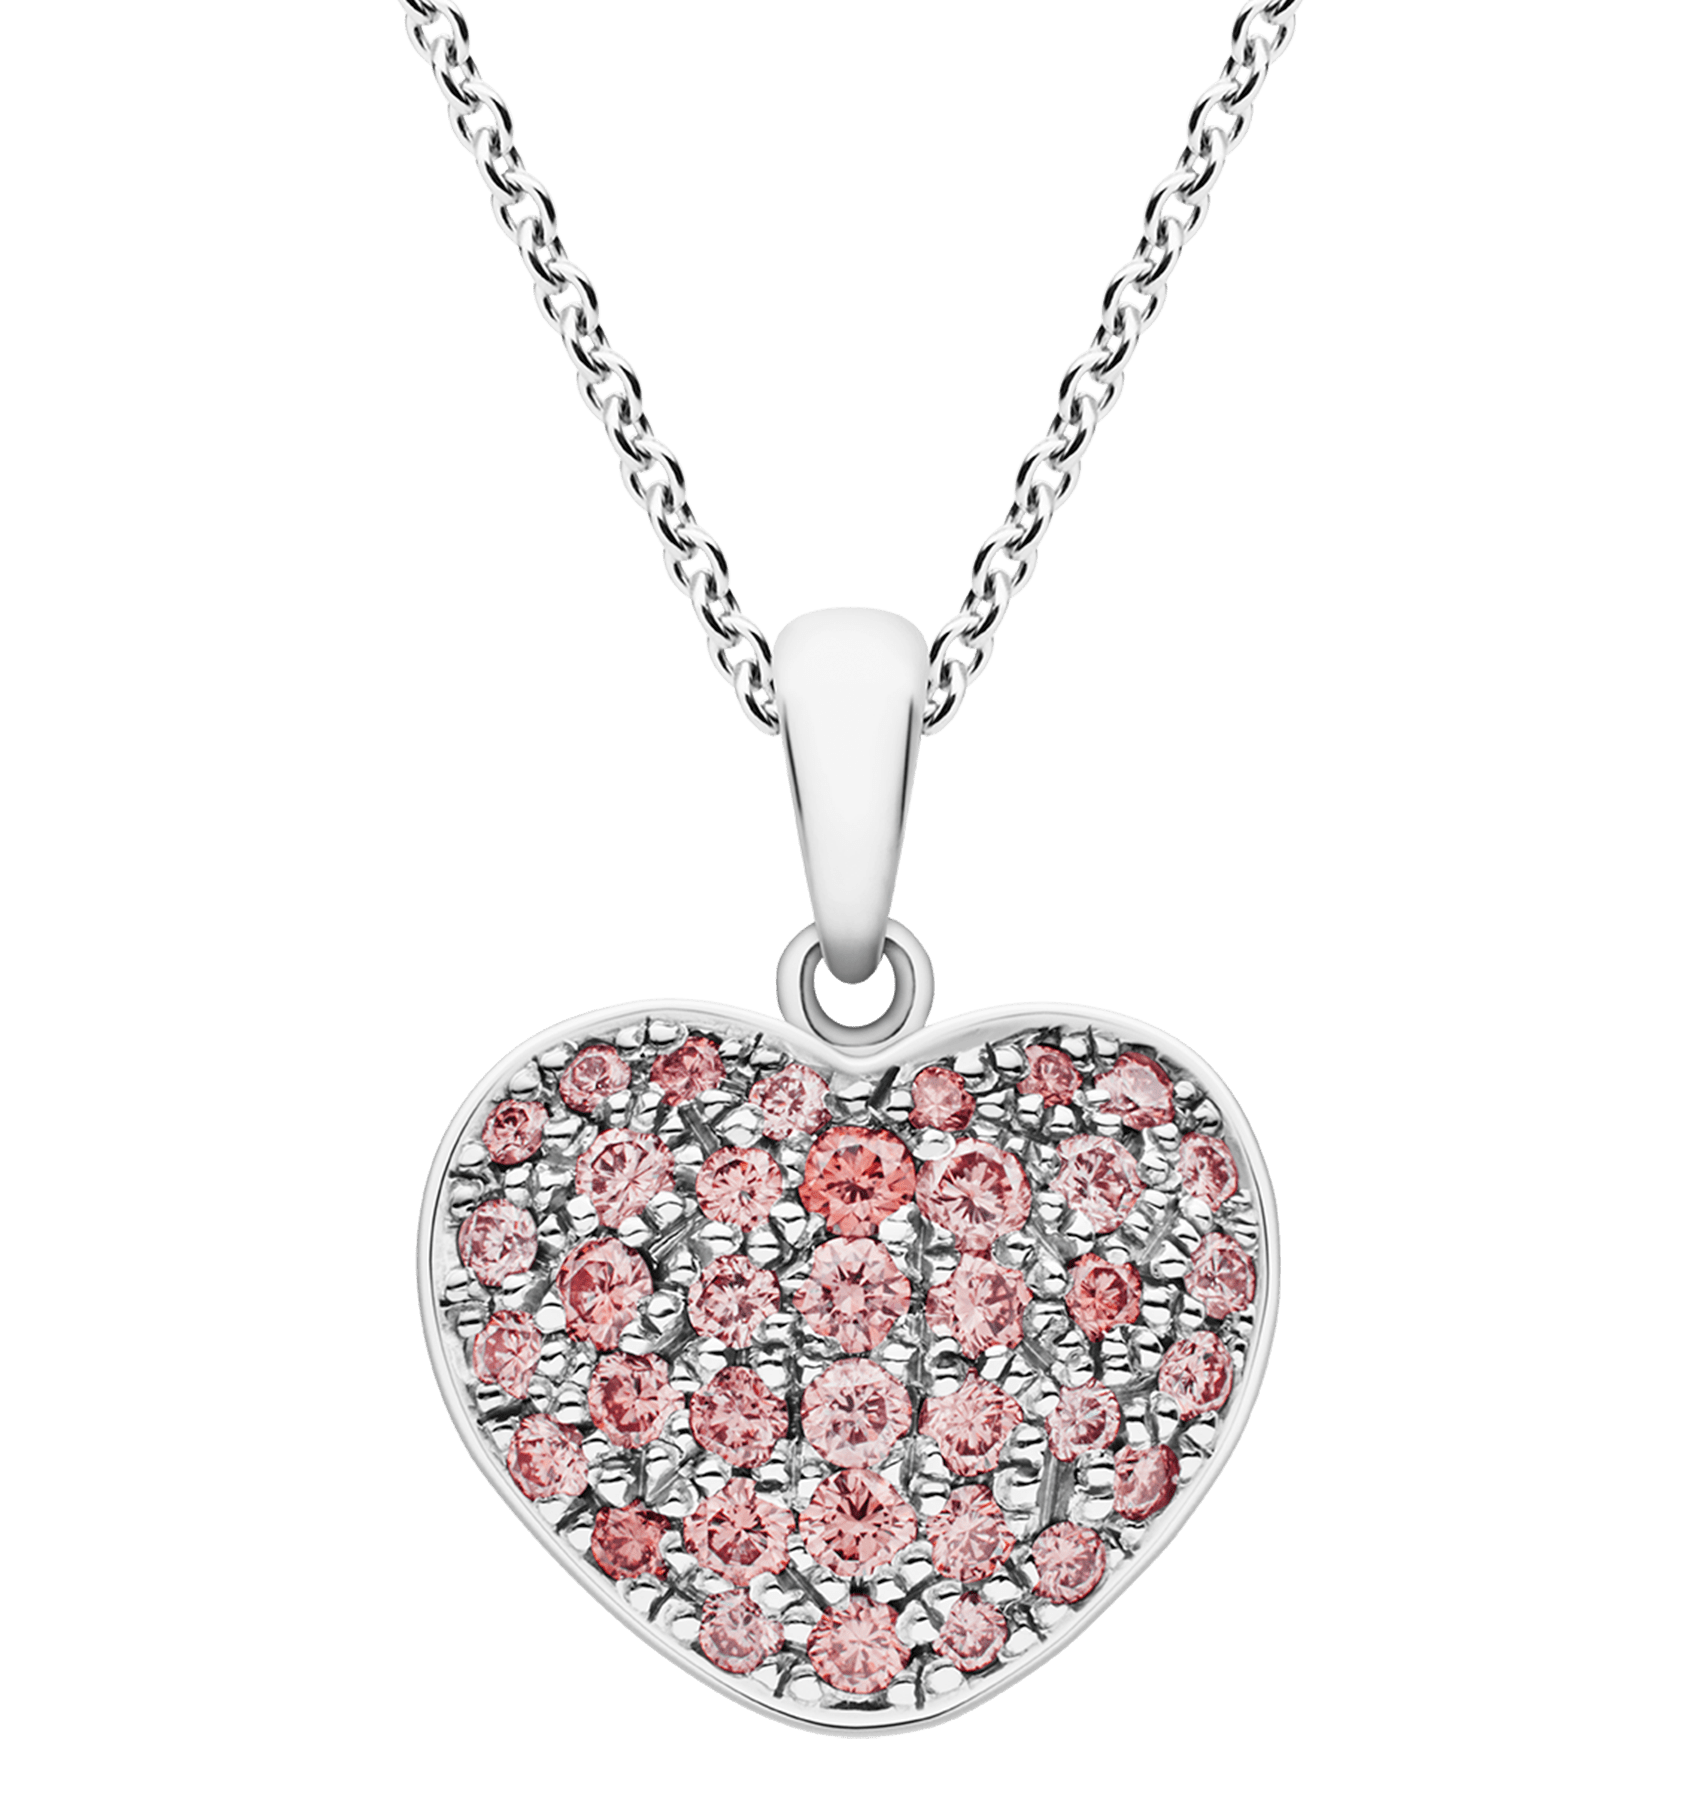 Argyle Pink Diamond Heart Pendant Forever A Symbol Of Love The Heart Is Delicately Celebrated With B Argyle Pink Diamonds Heart Pendant Diamond Pink Diamond